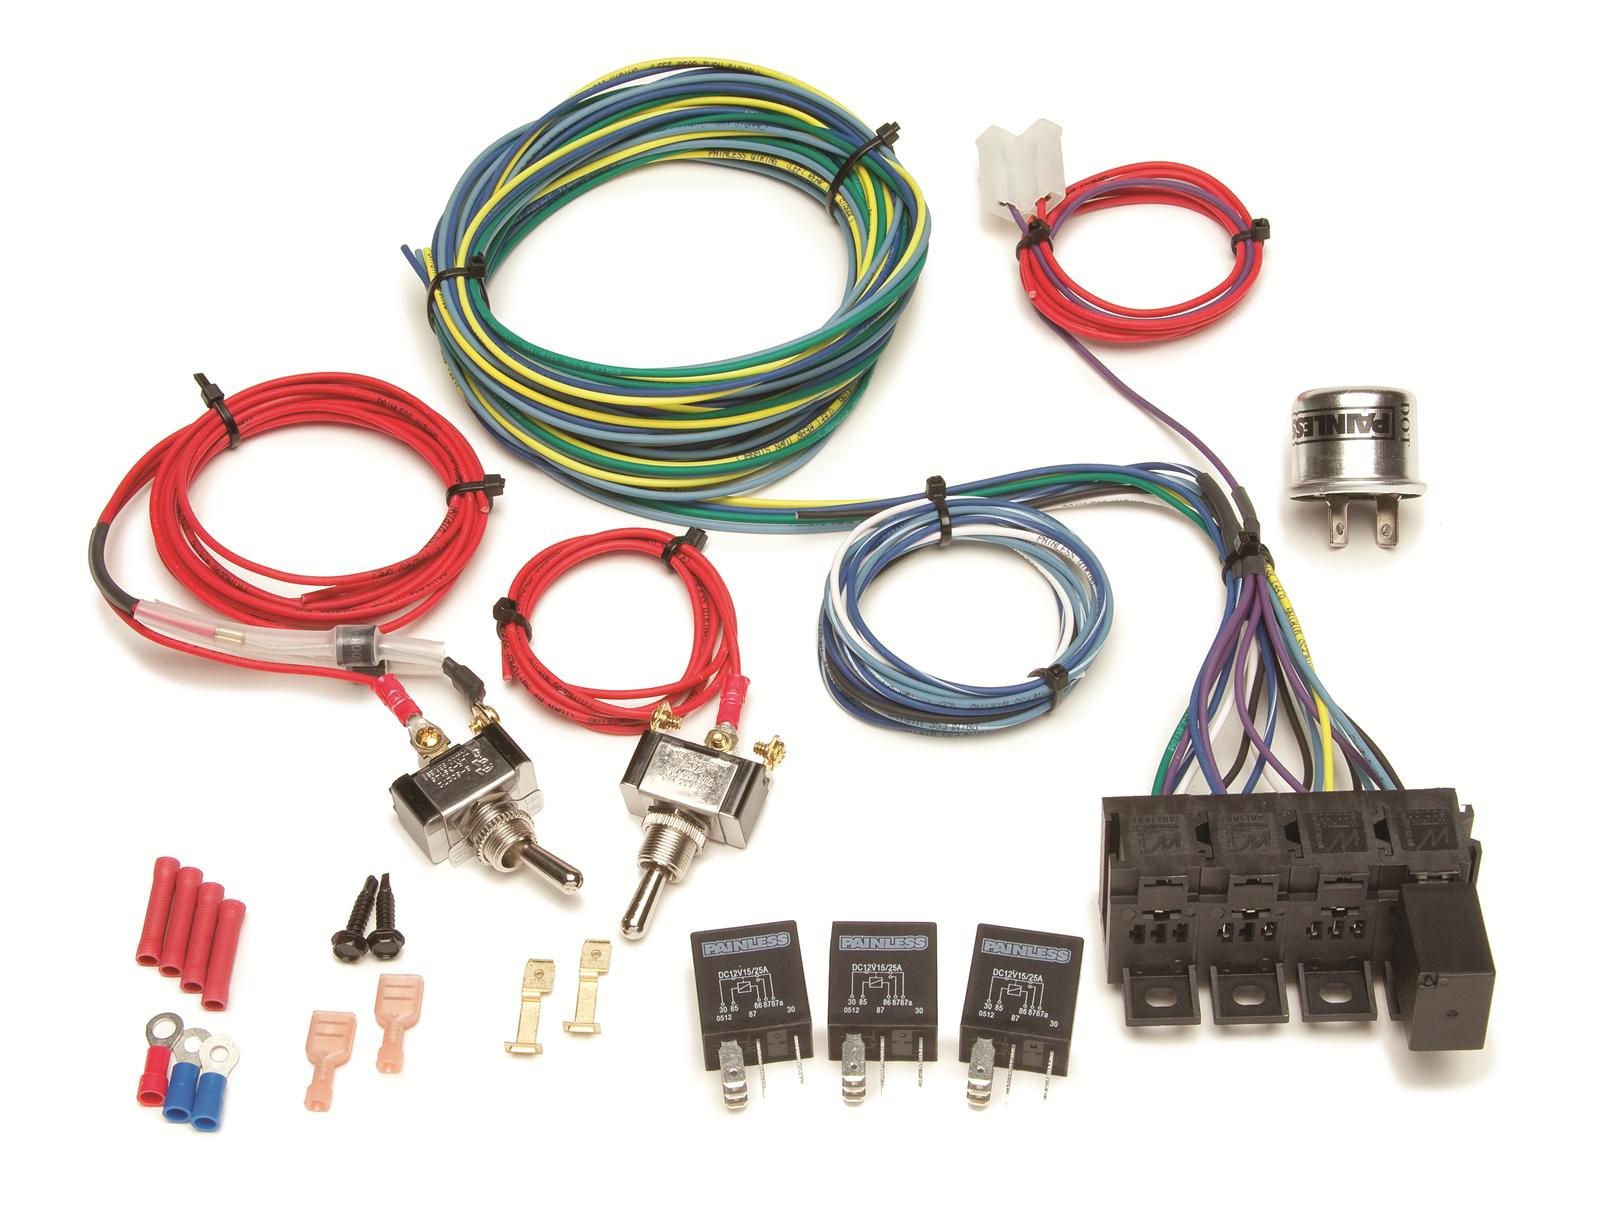 Universal Wiring Harness Instructions : Painless wiring universal wire harness summit ebay